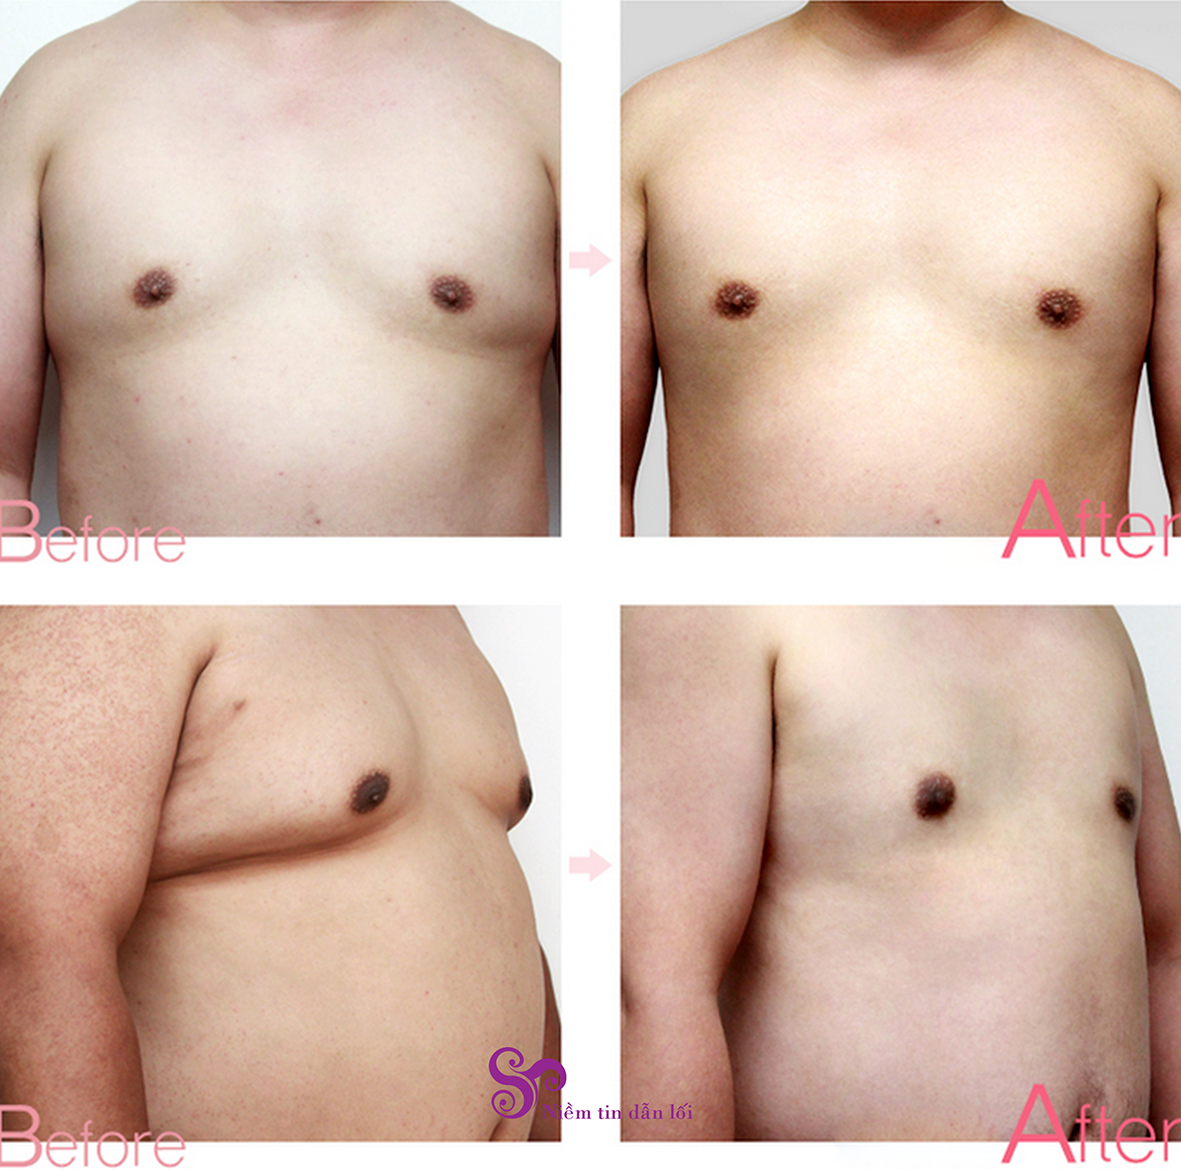 Orthopedic Surgery Of Big Breast For Men